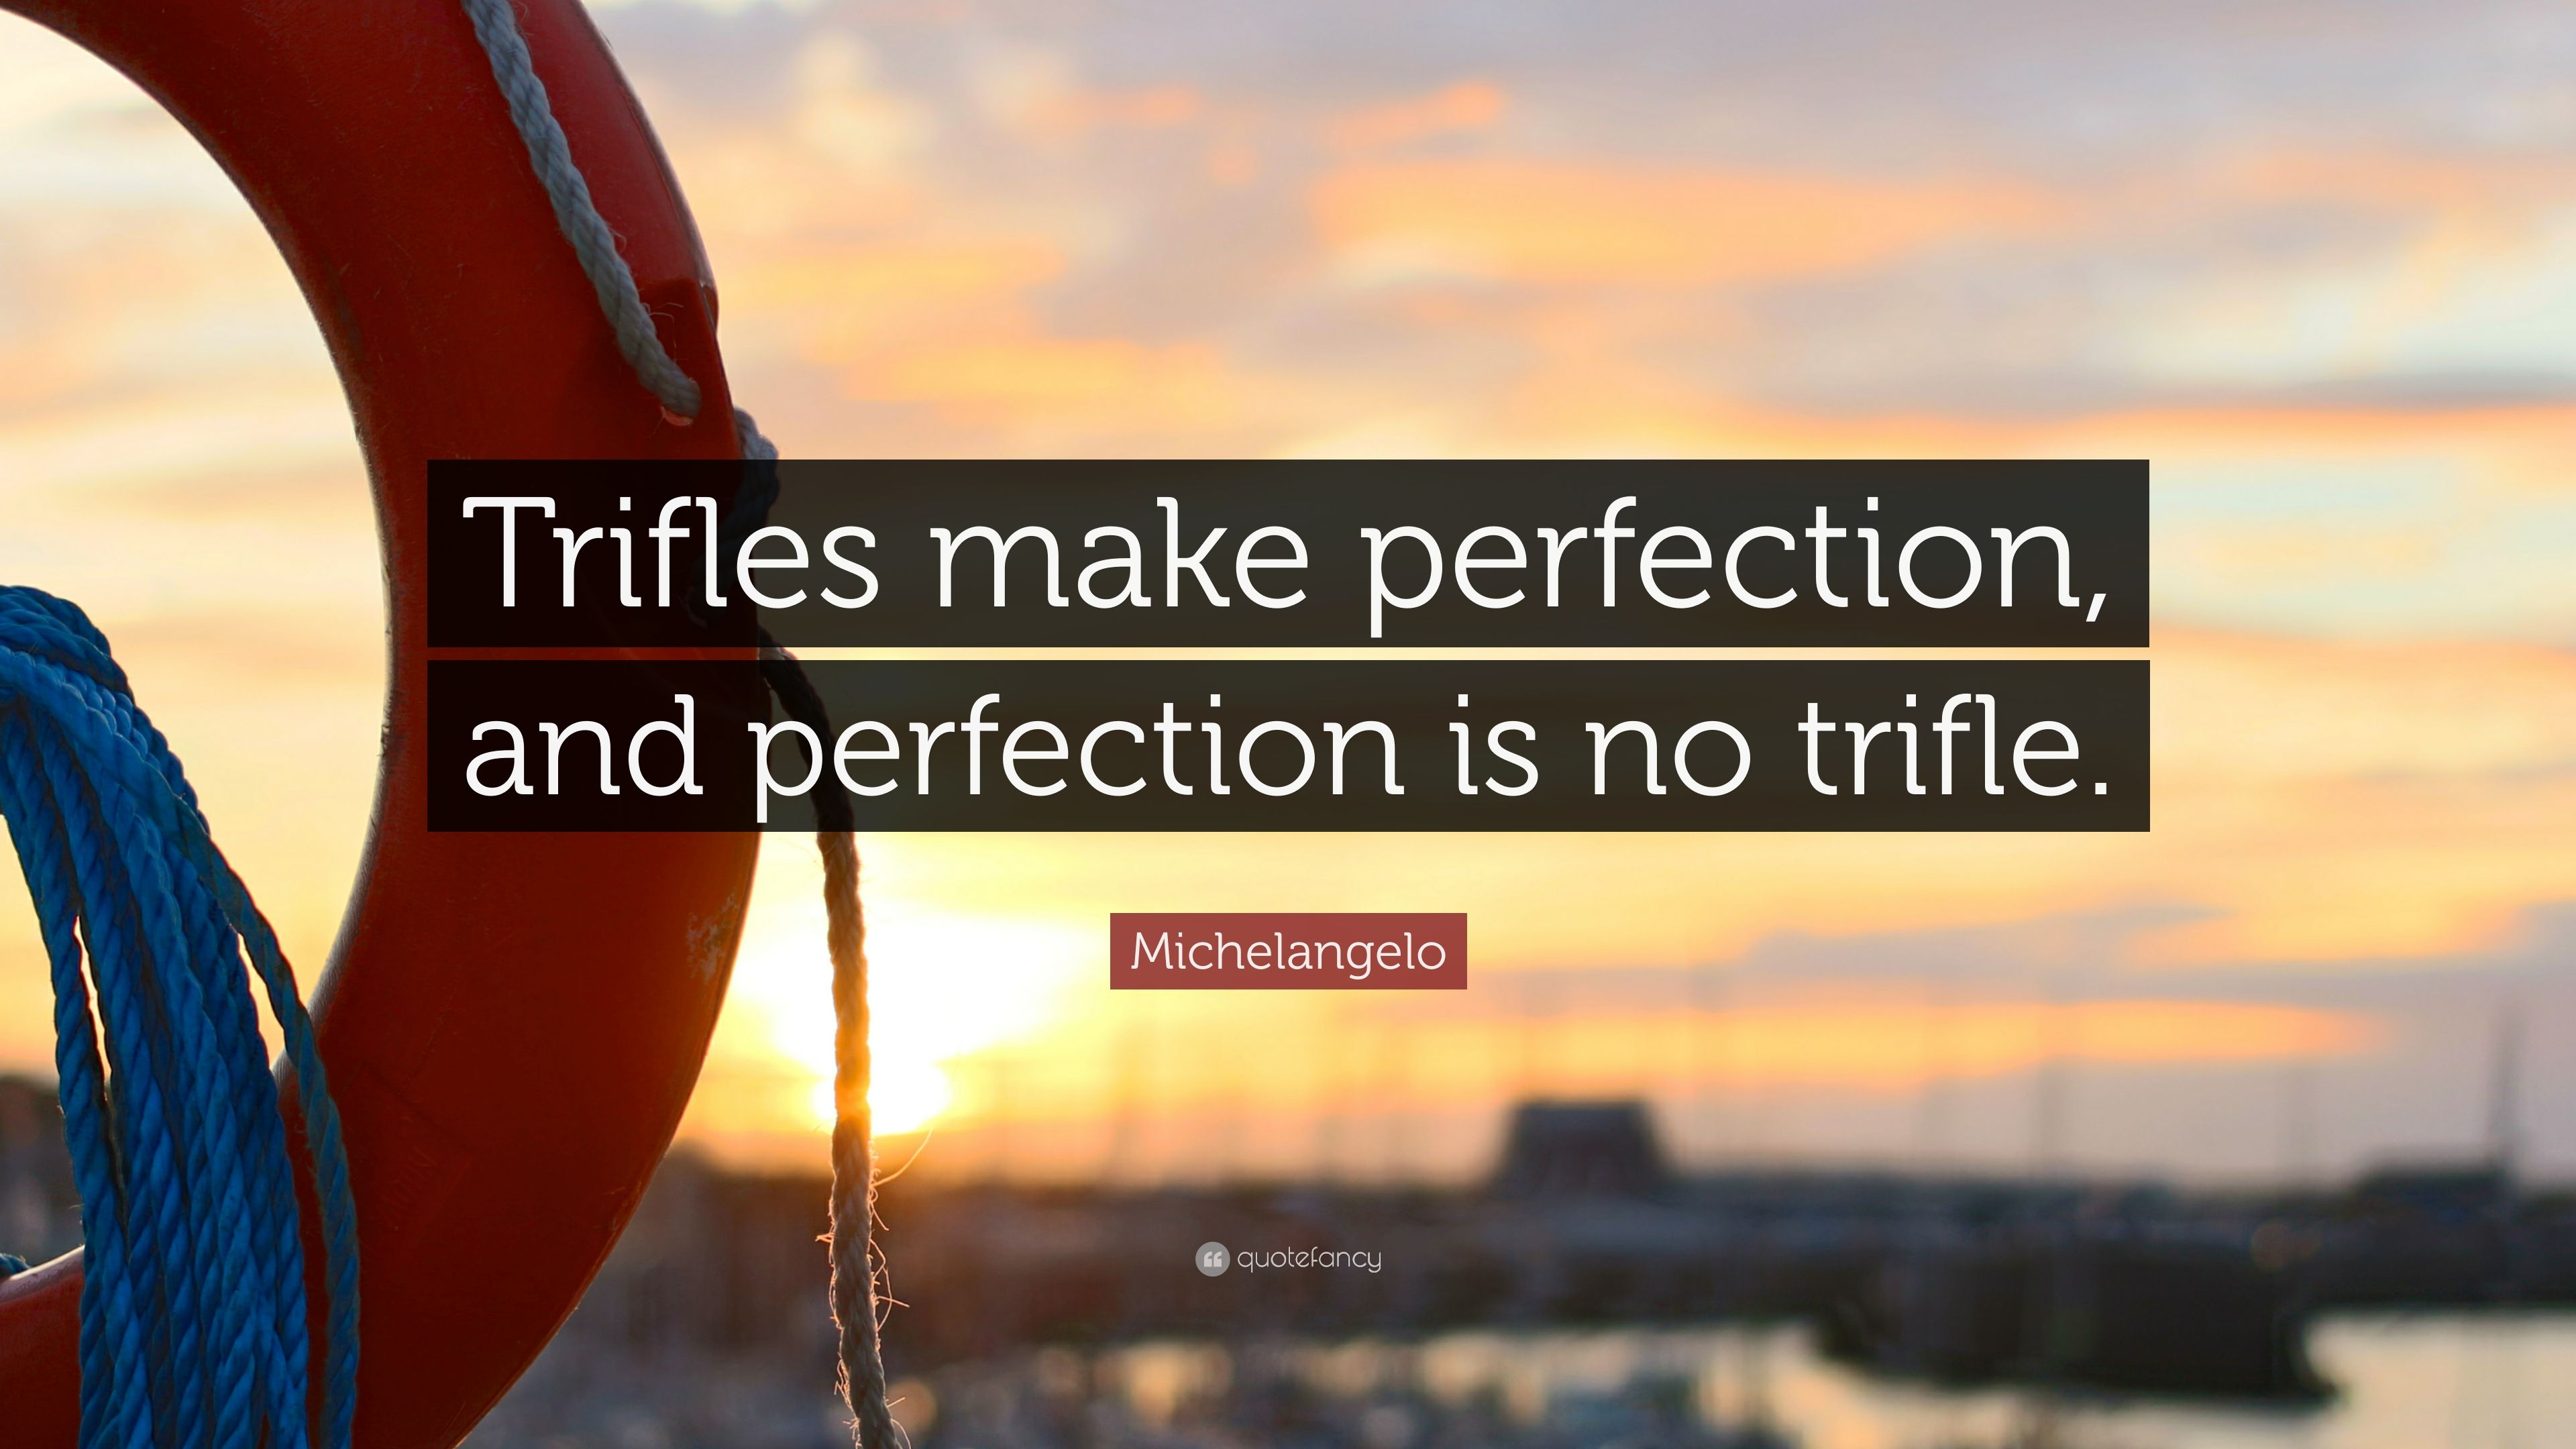 Essay On Trifles Make Perfection Quotes, Quotations & Sayings 2018